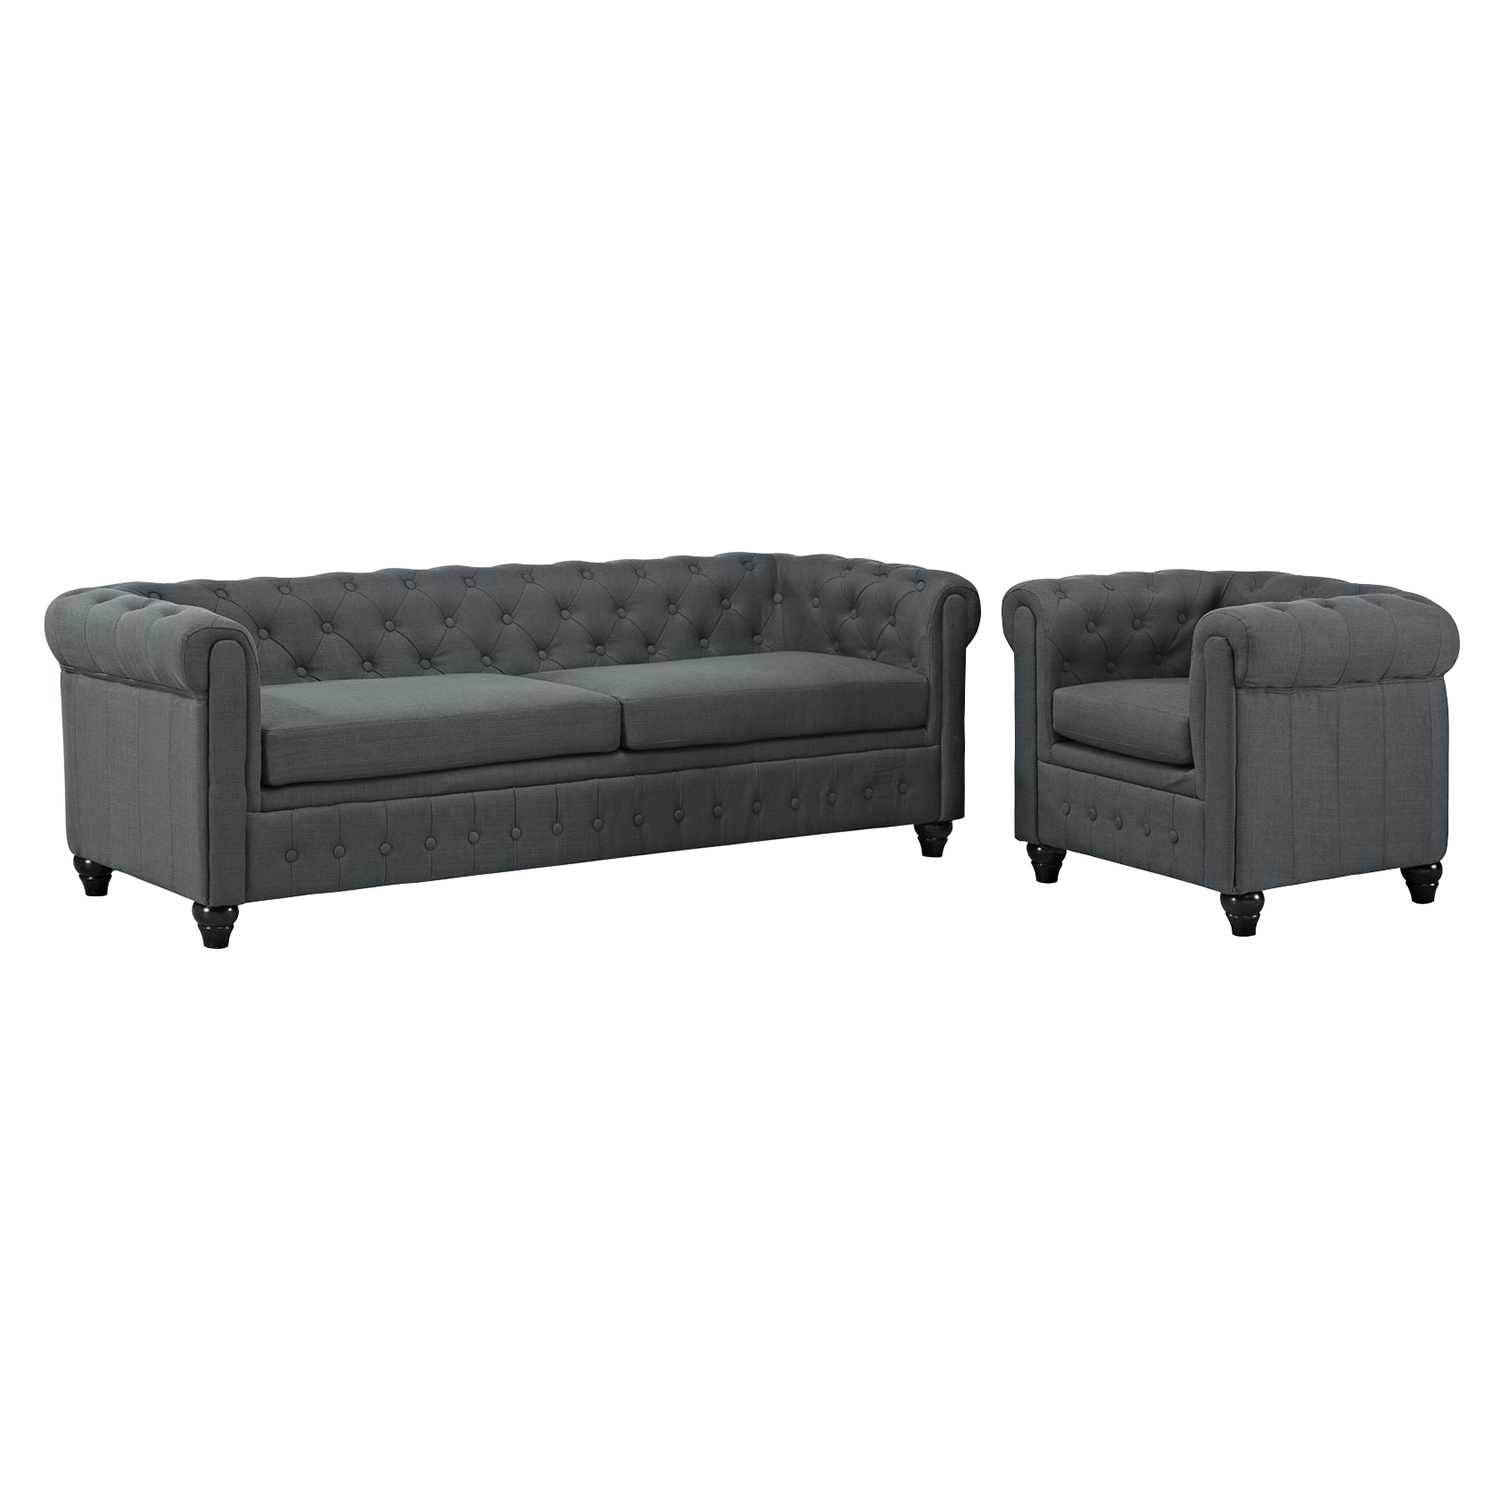 Earl 2 Pieces Sofa Set - Fabric, Gray, Button Tufted - EEI-1778-GRY-SET